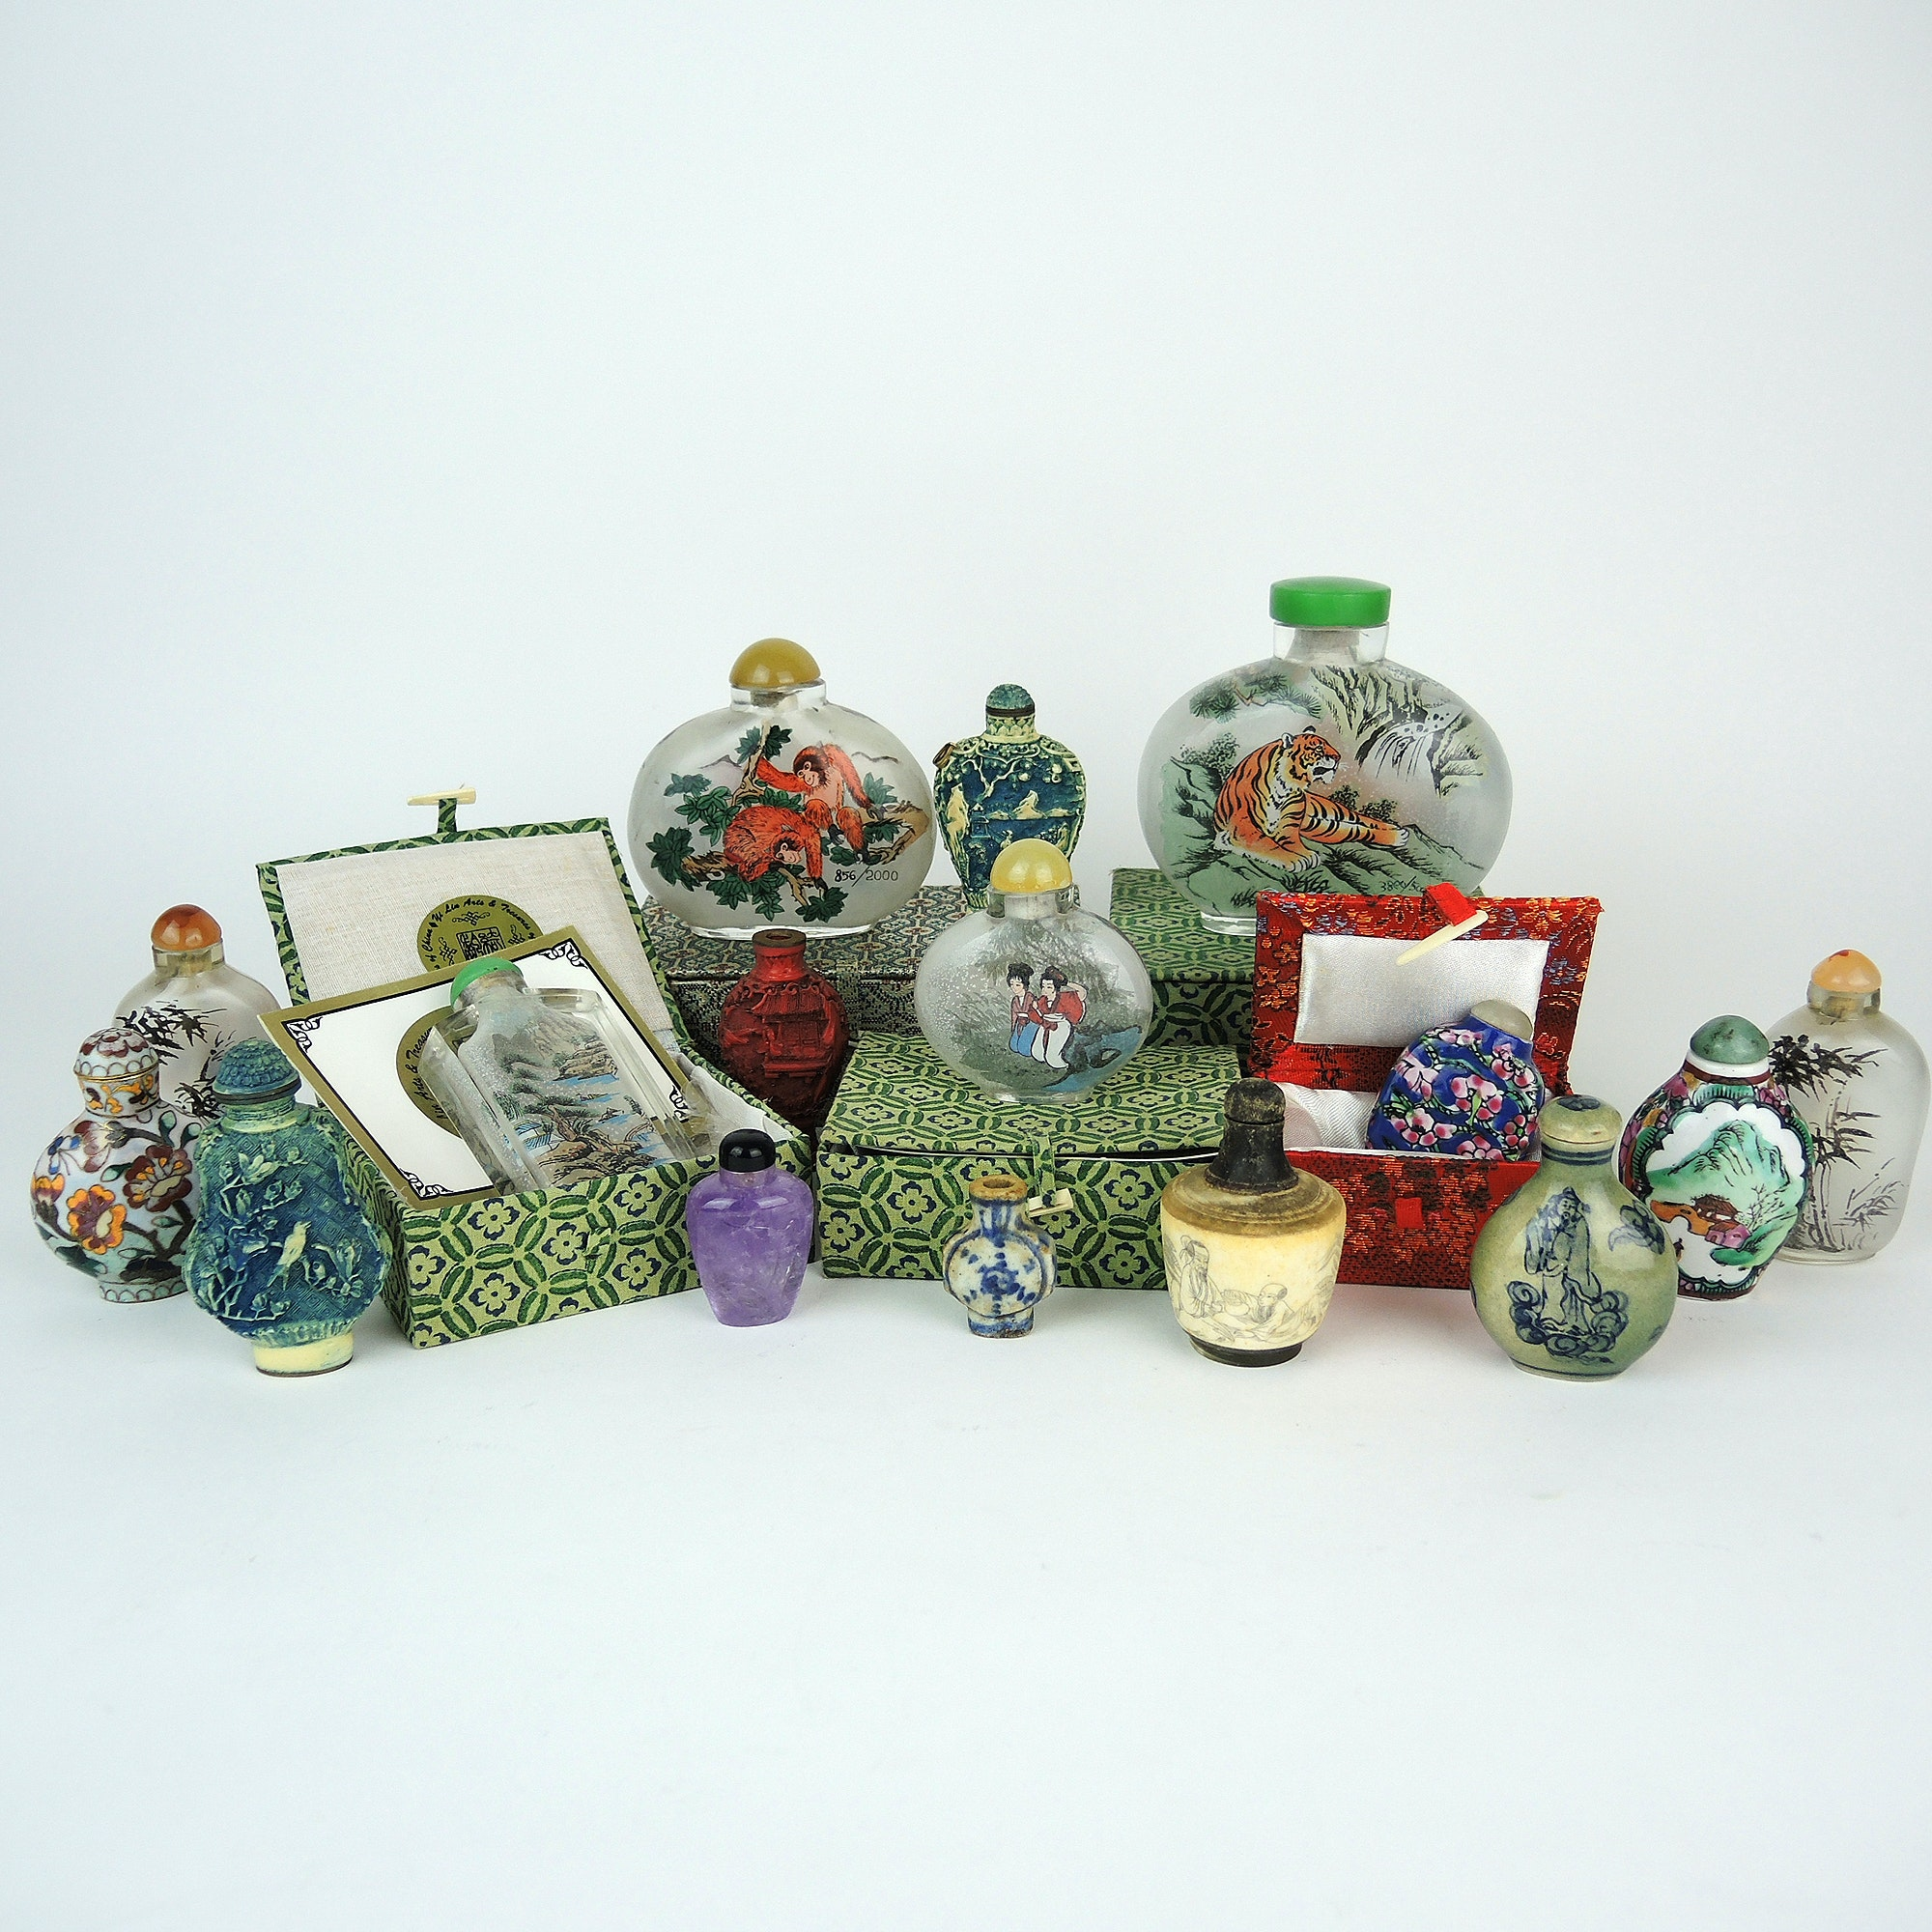 Collection of Asian Inspired Glass Perfume and Snuff Bottles